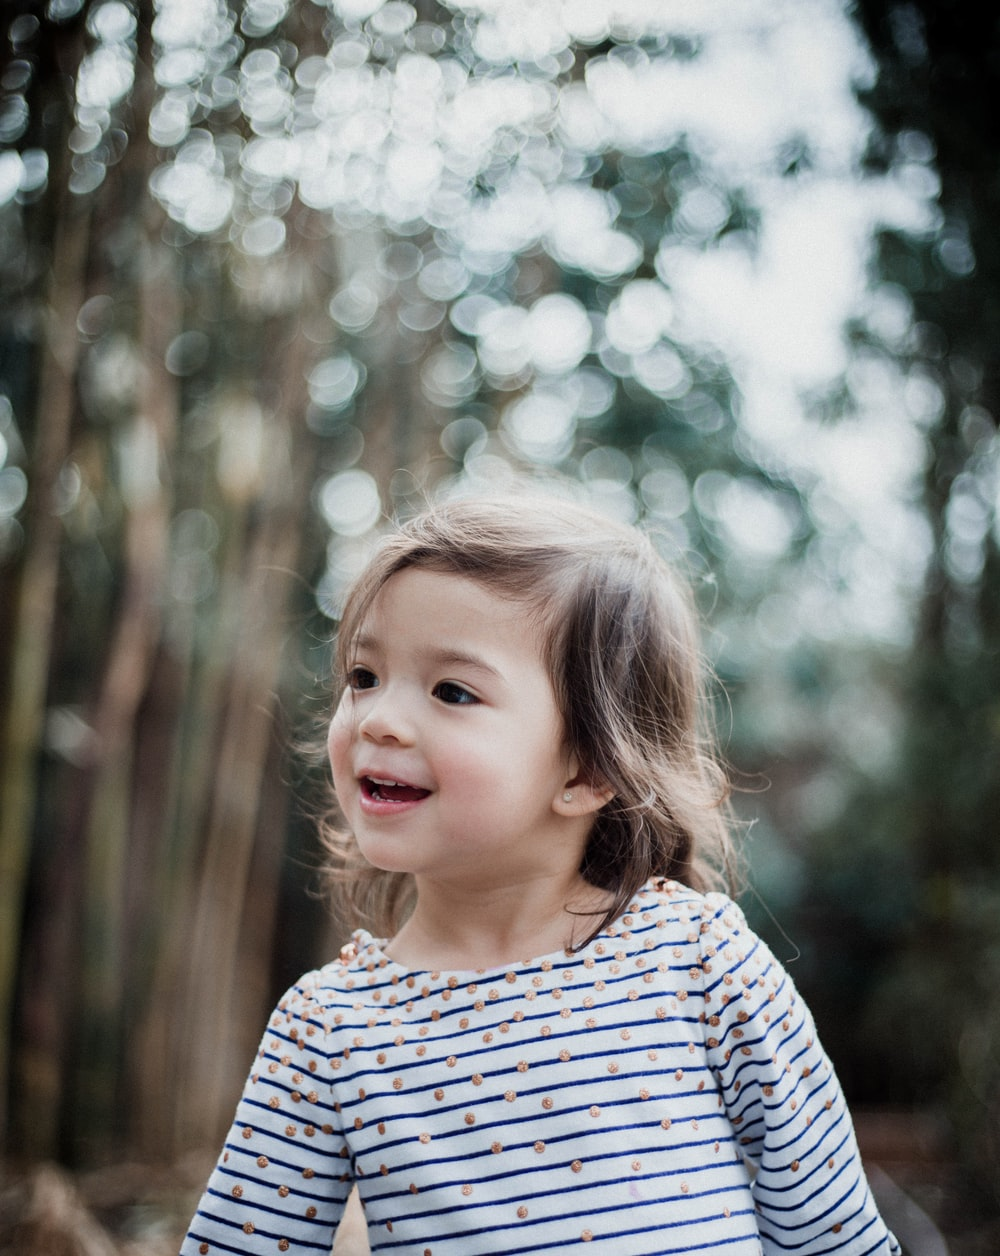 girl wearing white striped shirt near on tree forest